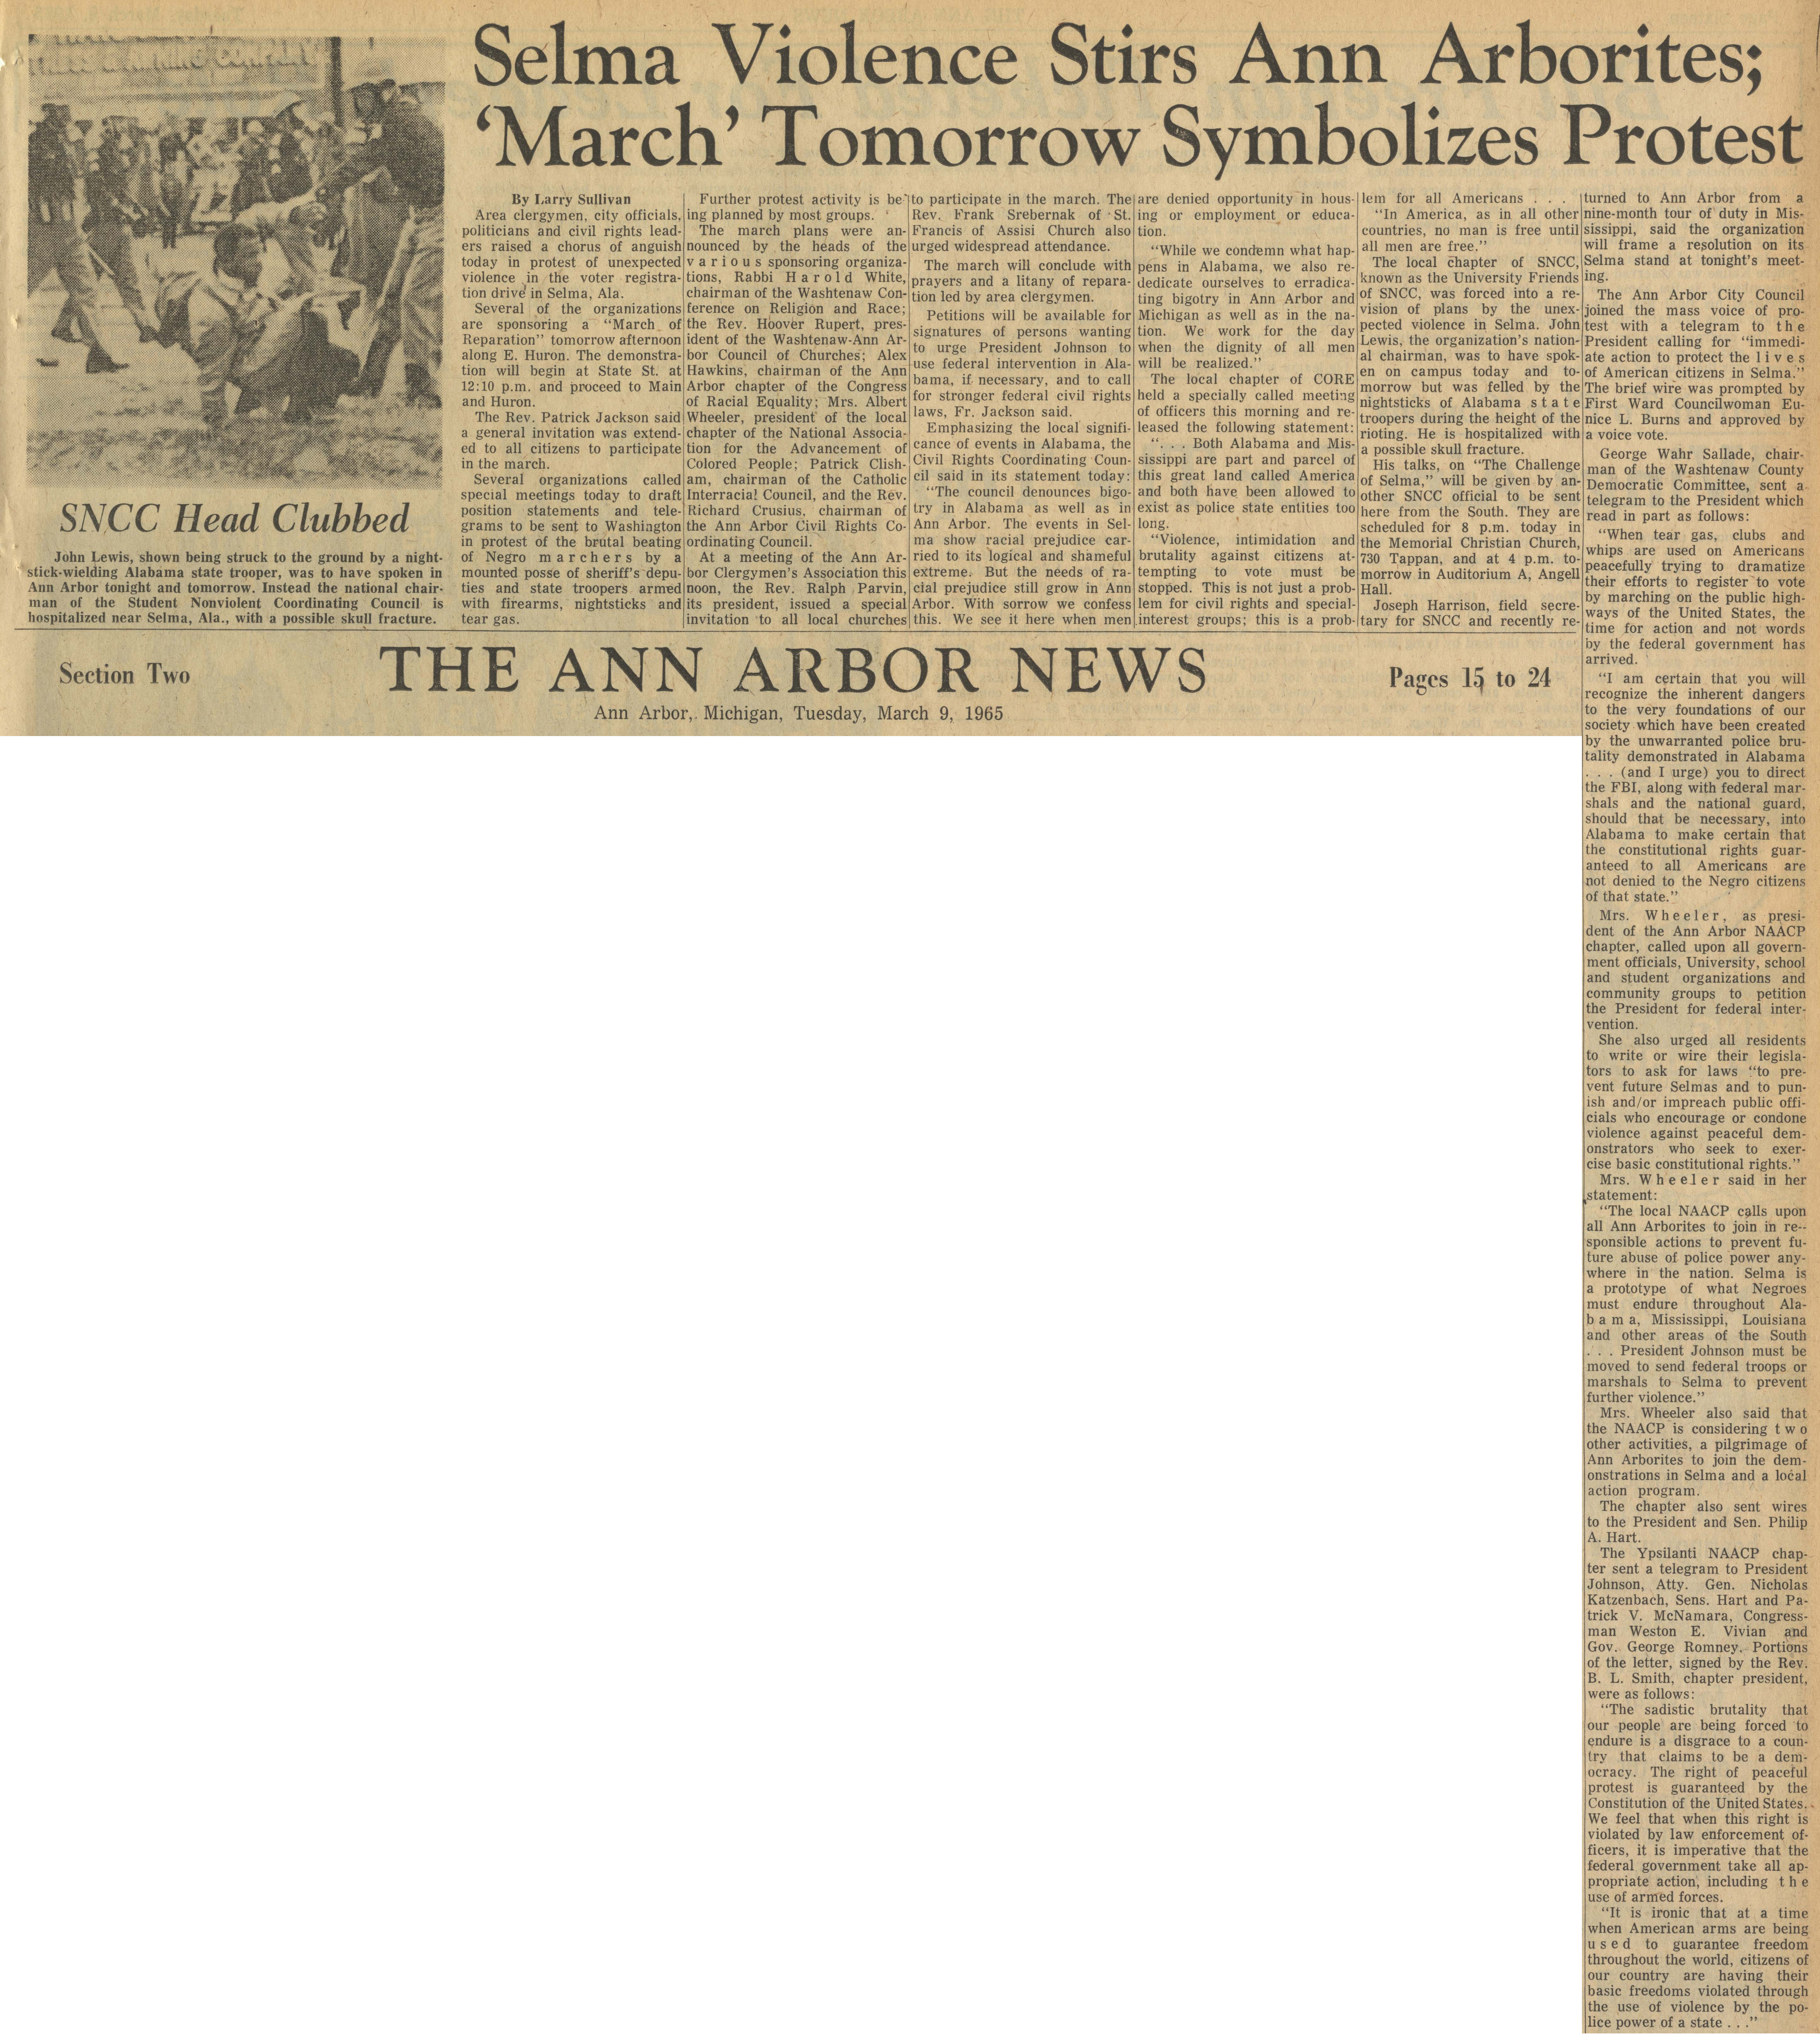 Selma Violence Stirs Ann Arborites; 'March' Tomorrow Symbolizes Protest image